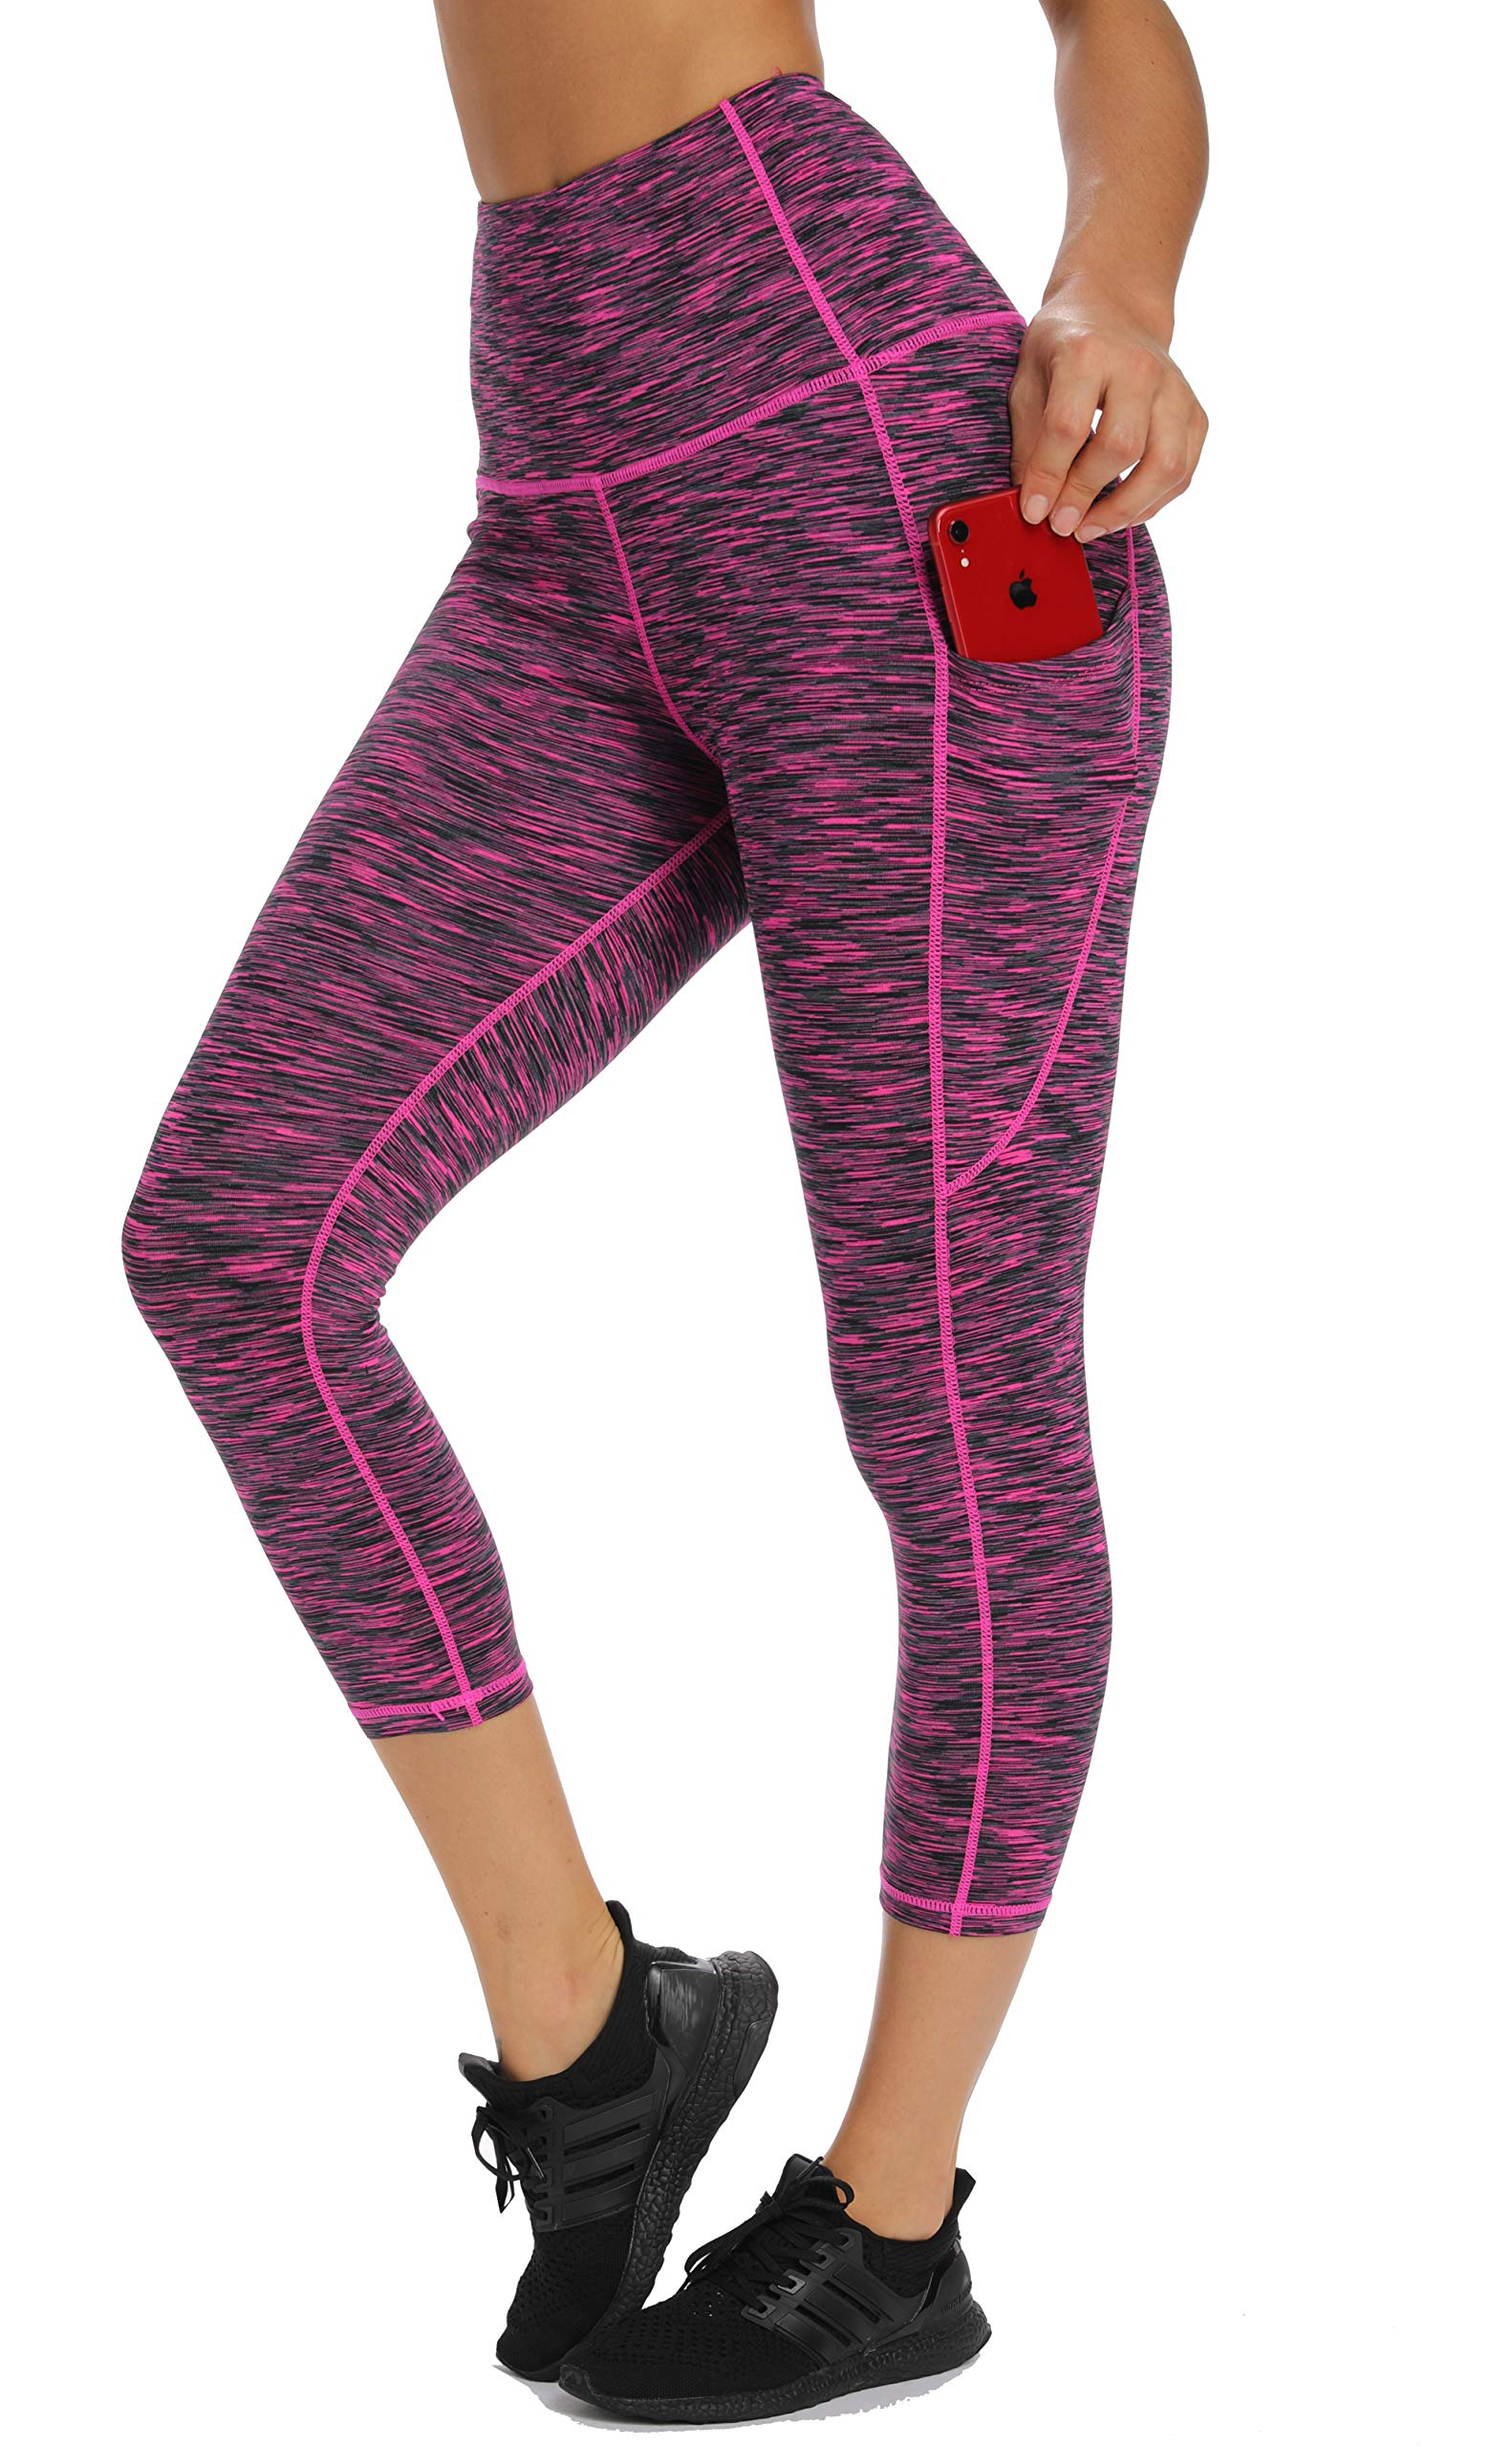 Olacia Womens High Waisted Yoga Capri Leggings Workout Leggings with Pockets